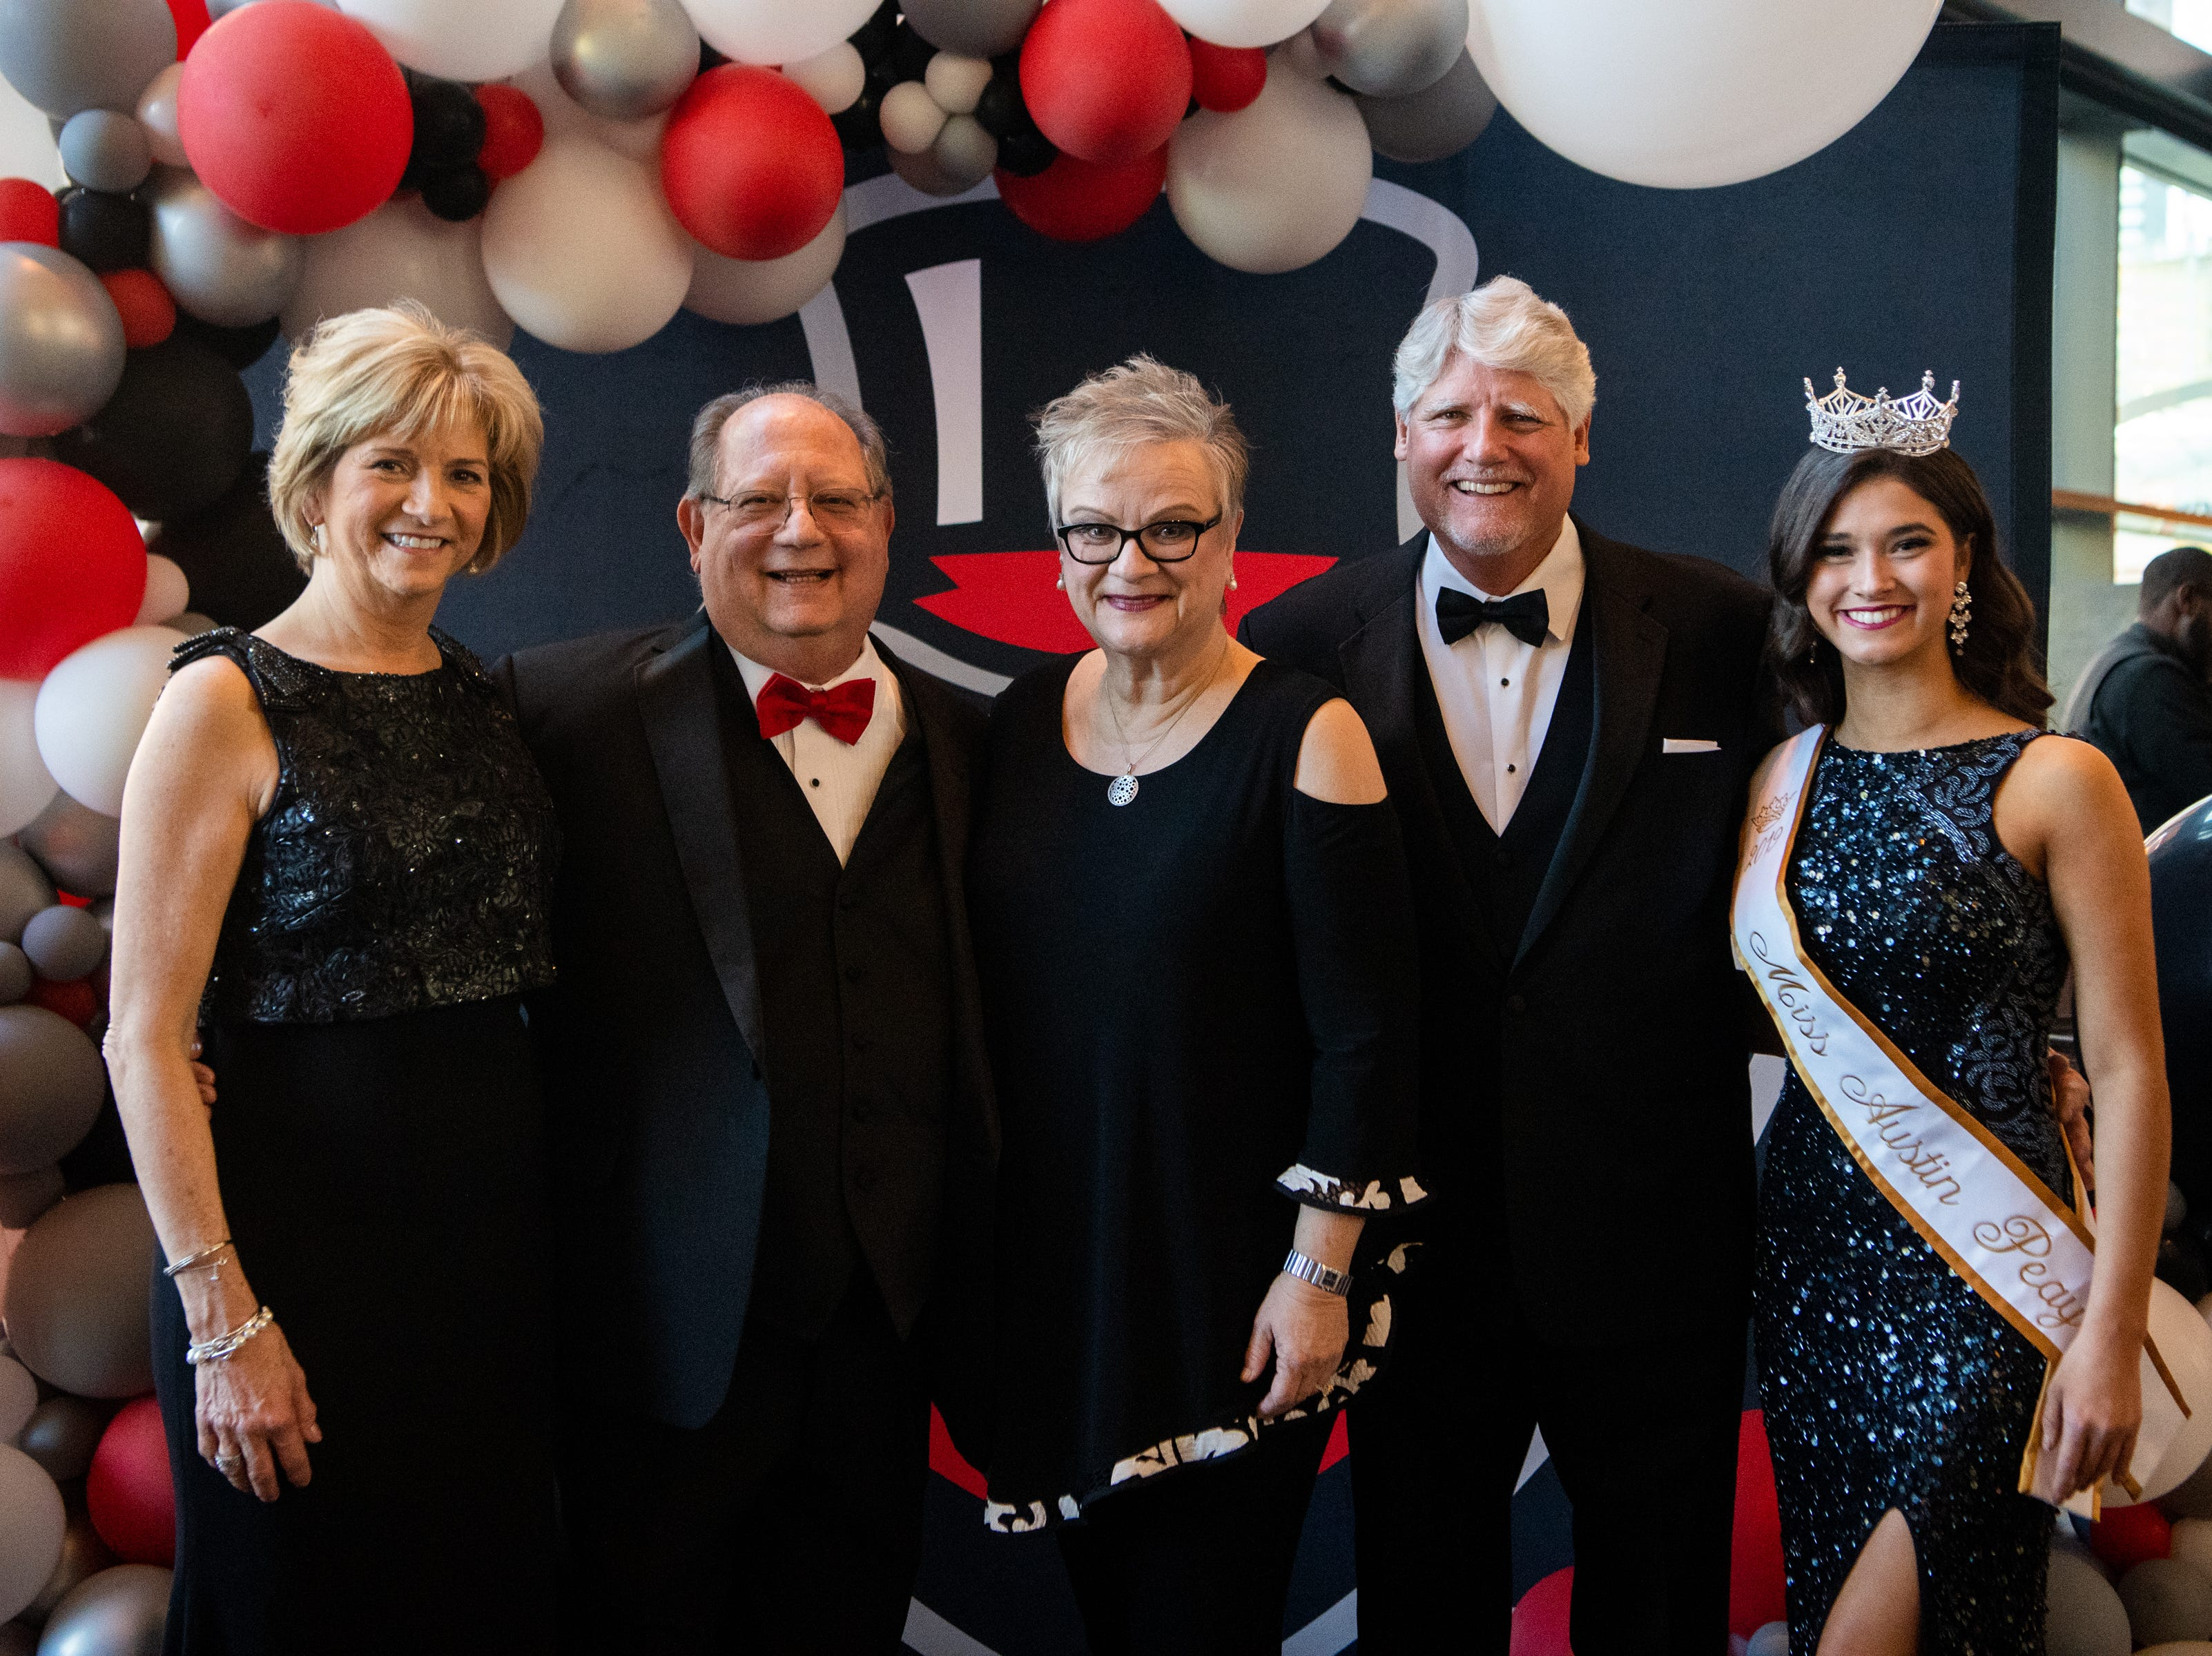 Dr. Jeannie Beauchamp, Elliott Herzlich, Dr. Alisa White, Len Rye and Allie Privitt (from left) pose for a photo during Austin Peay State University's annual Candlelight Ball at the Omni Nashville Hotel Saturday, March 16, 2019, in Nashville, Tenn.